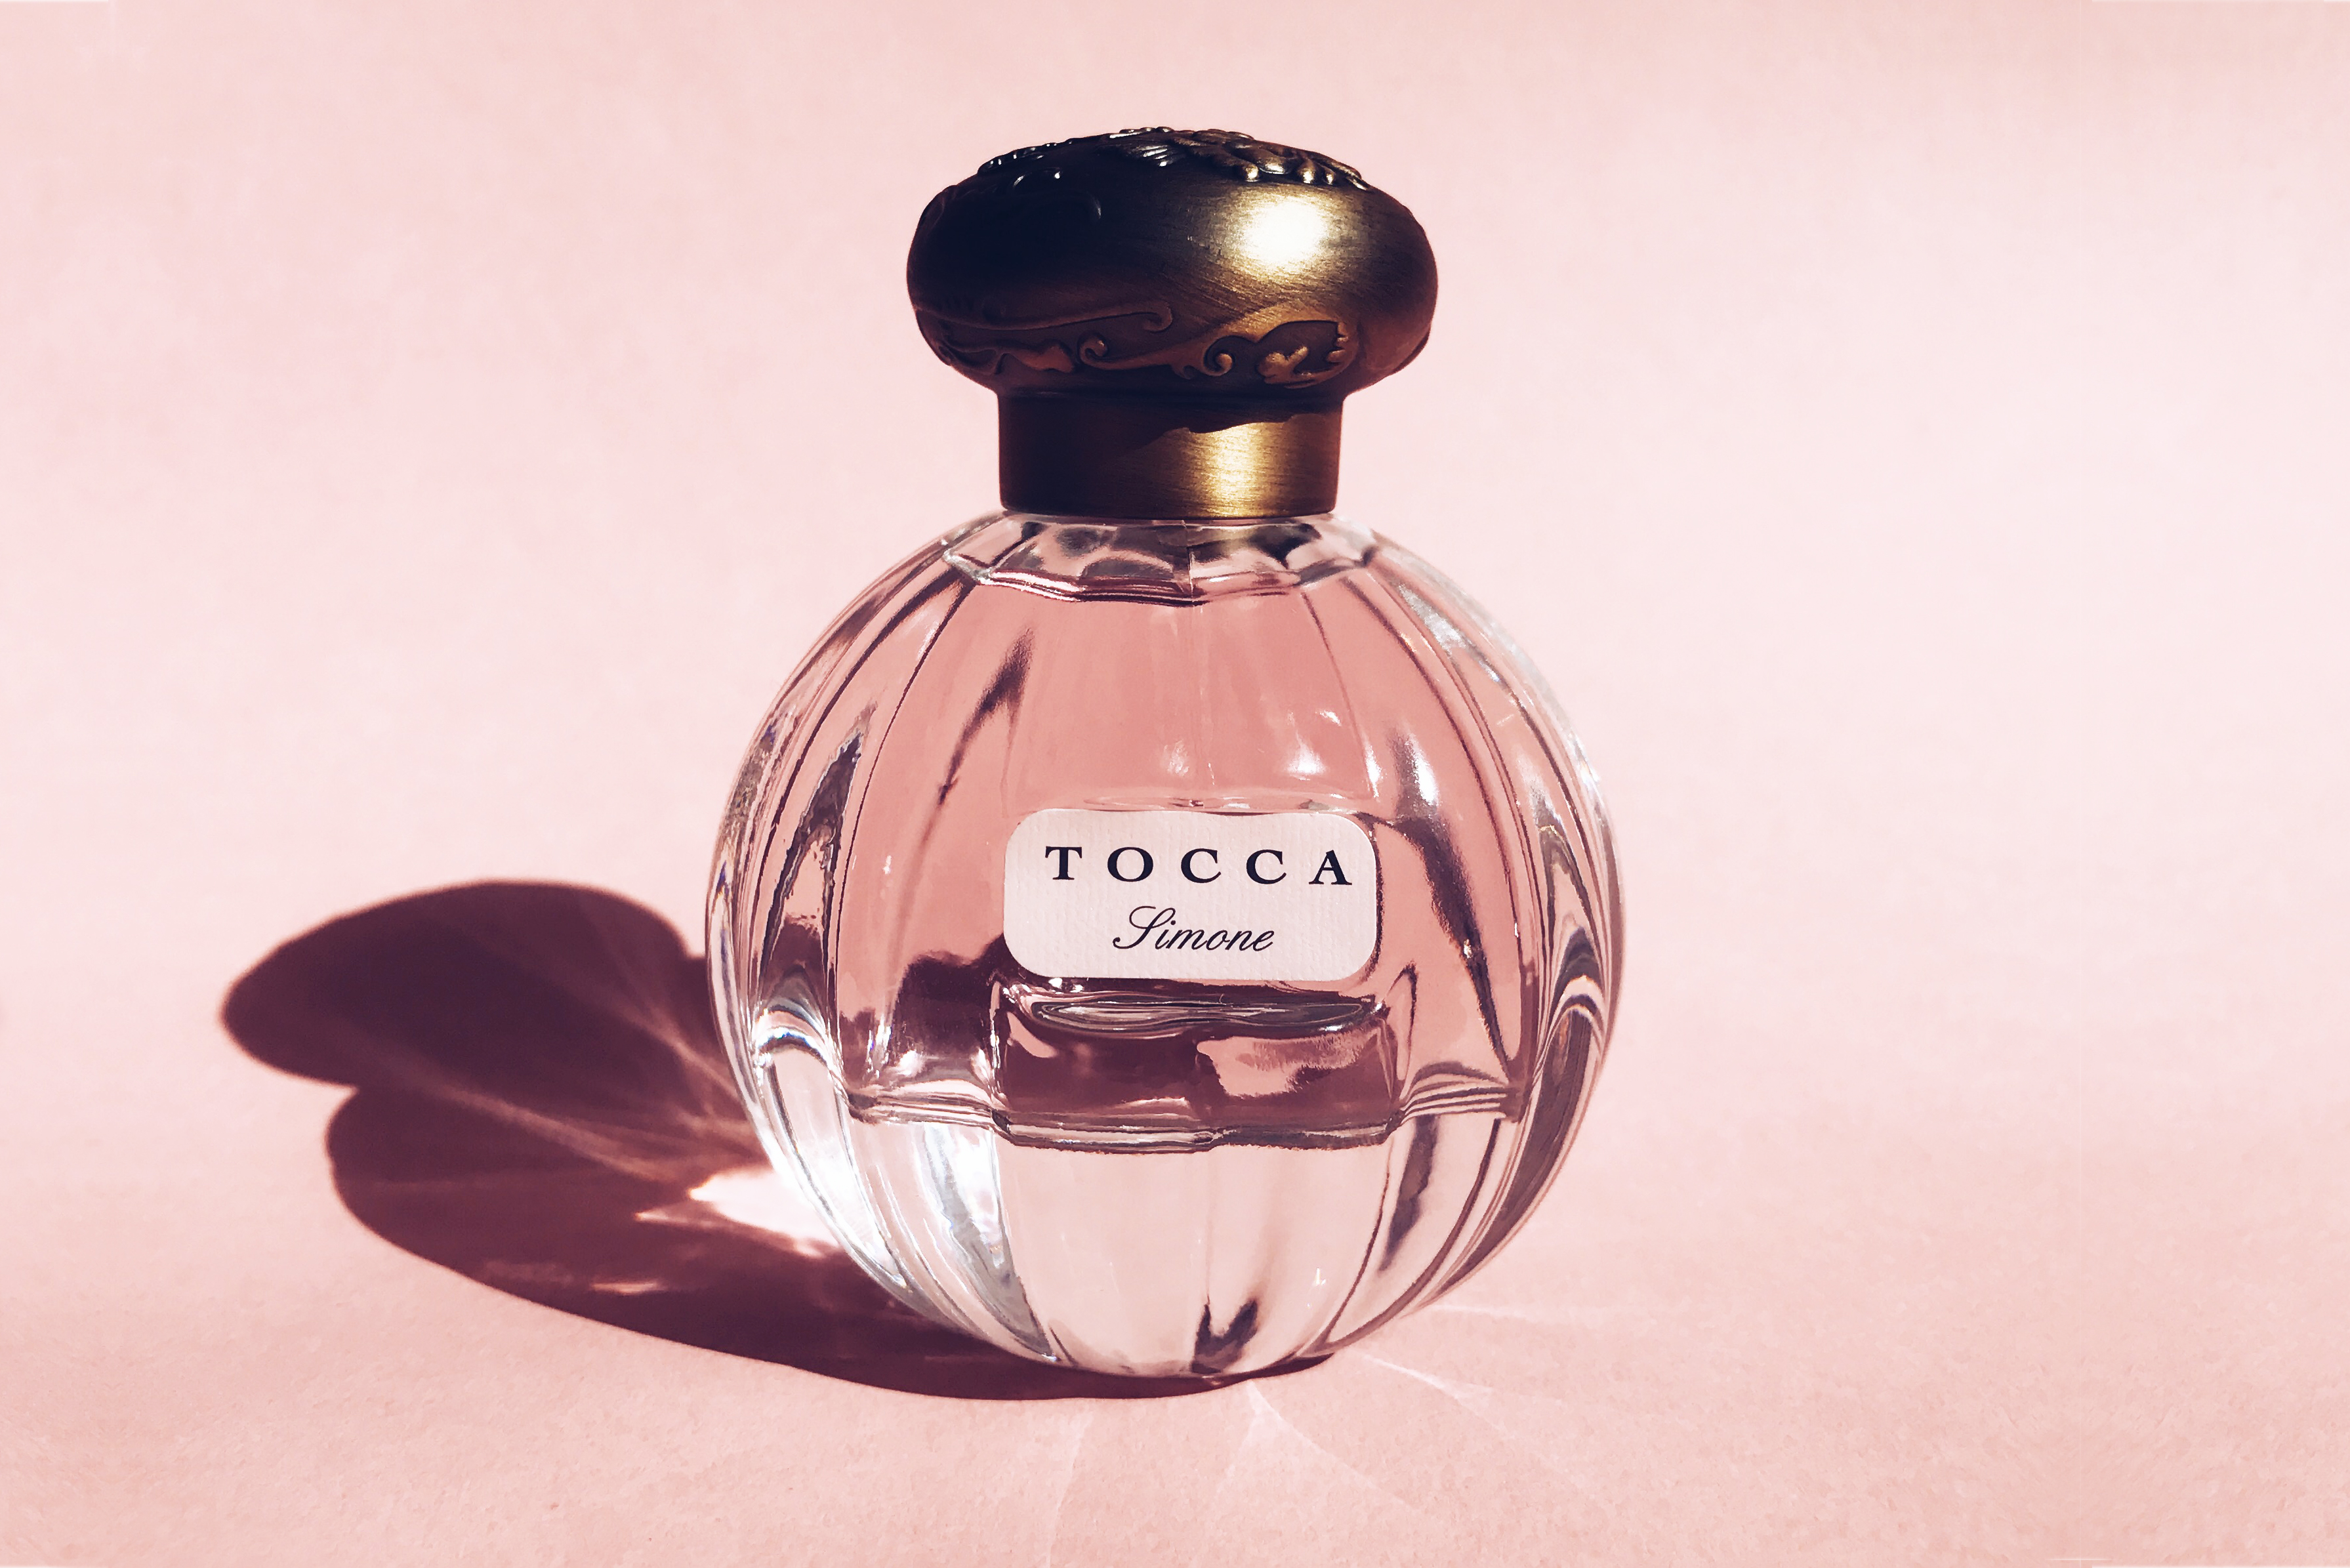 Perfume of the Month: Simone by TOCCA